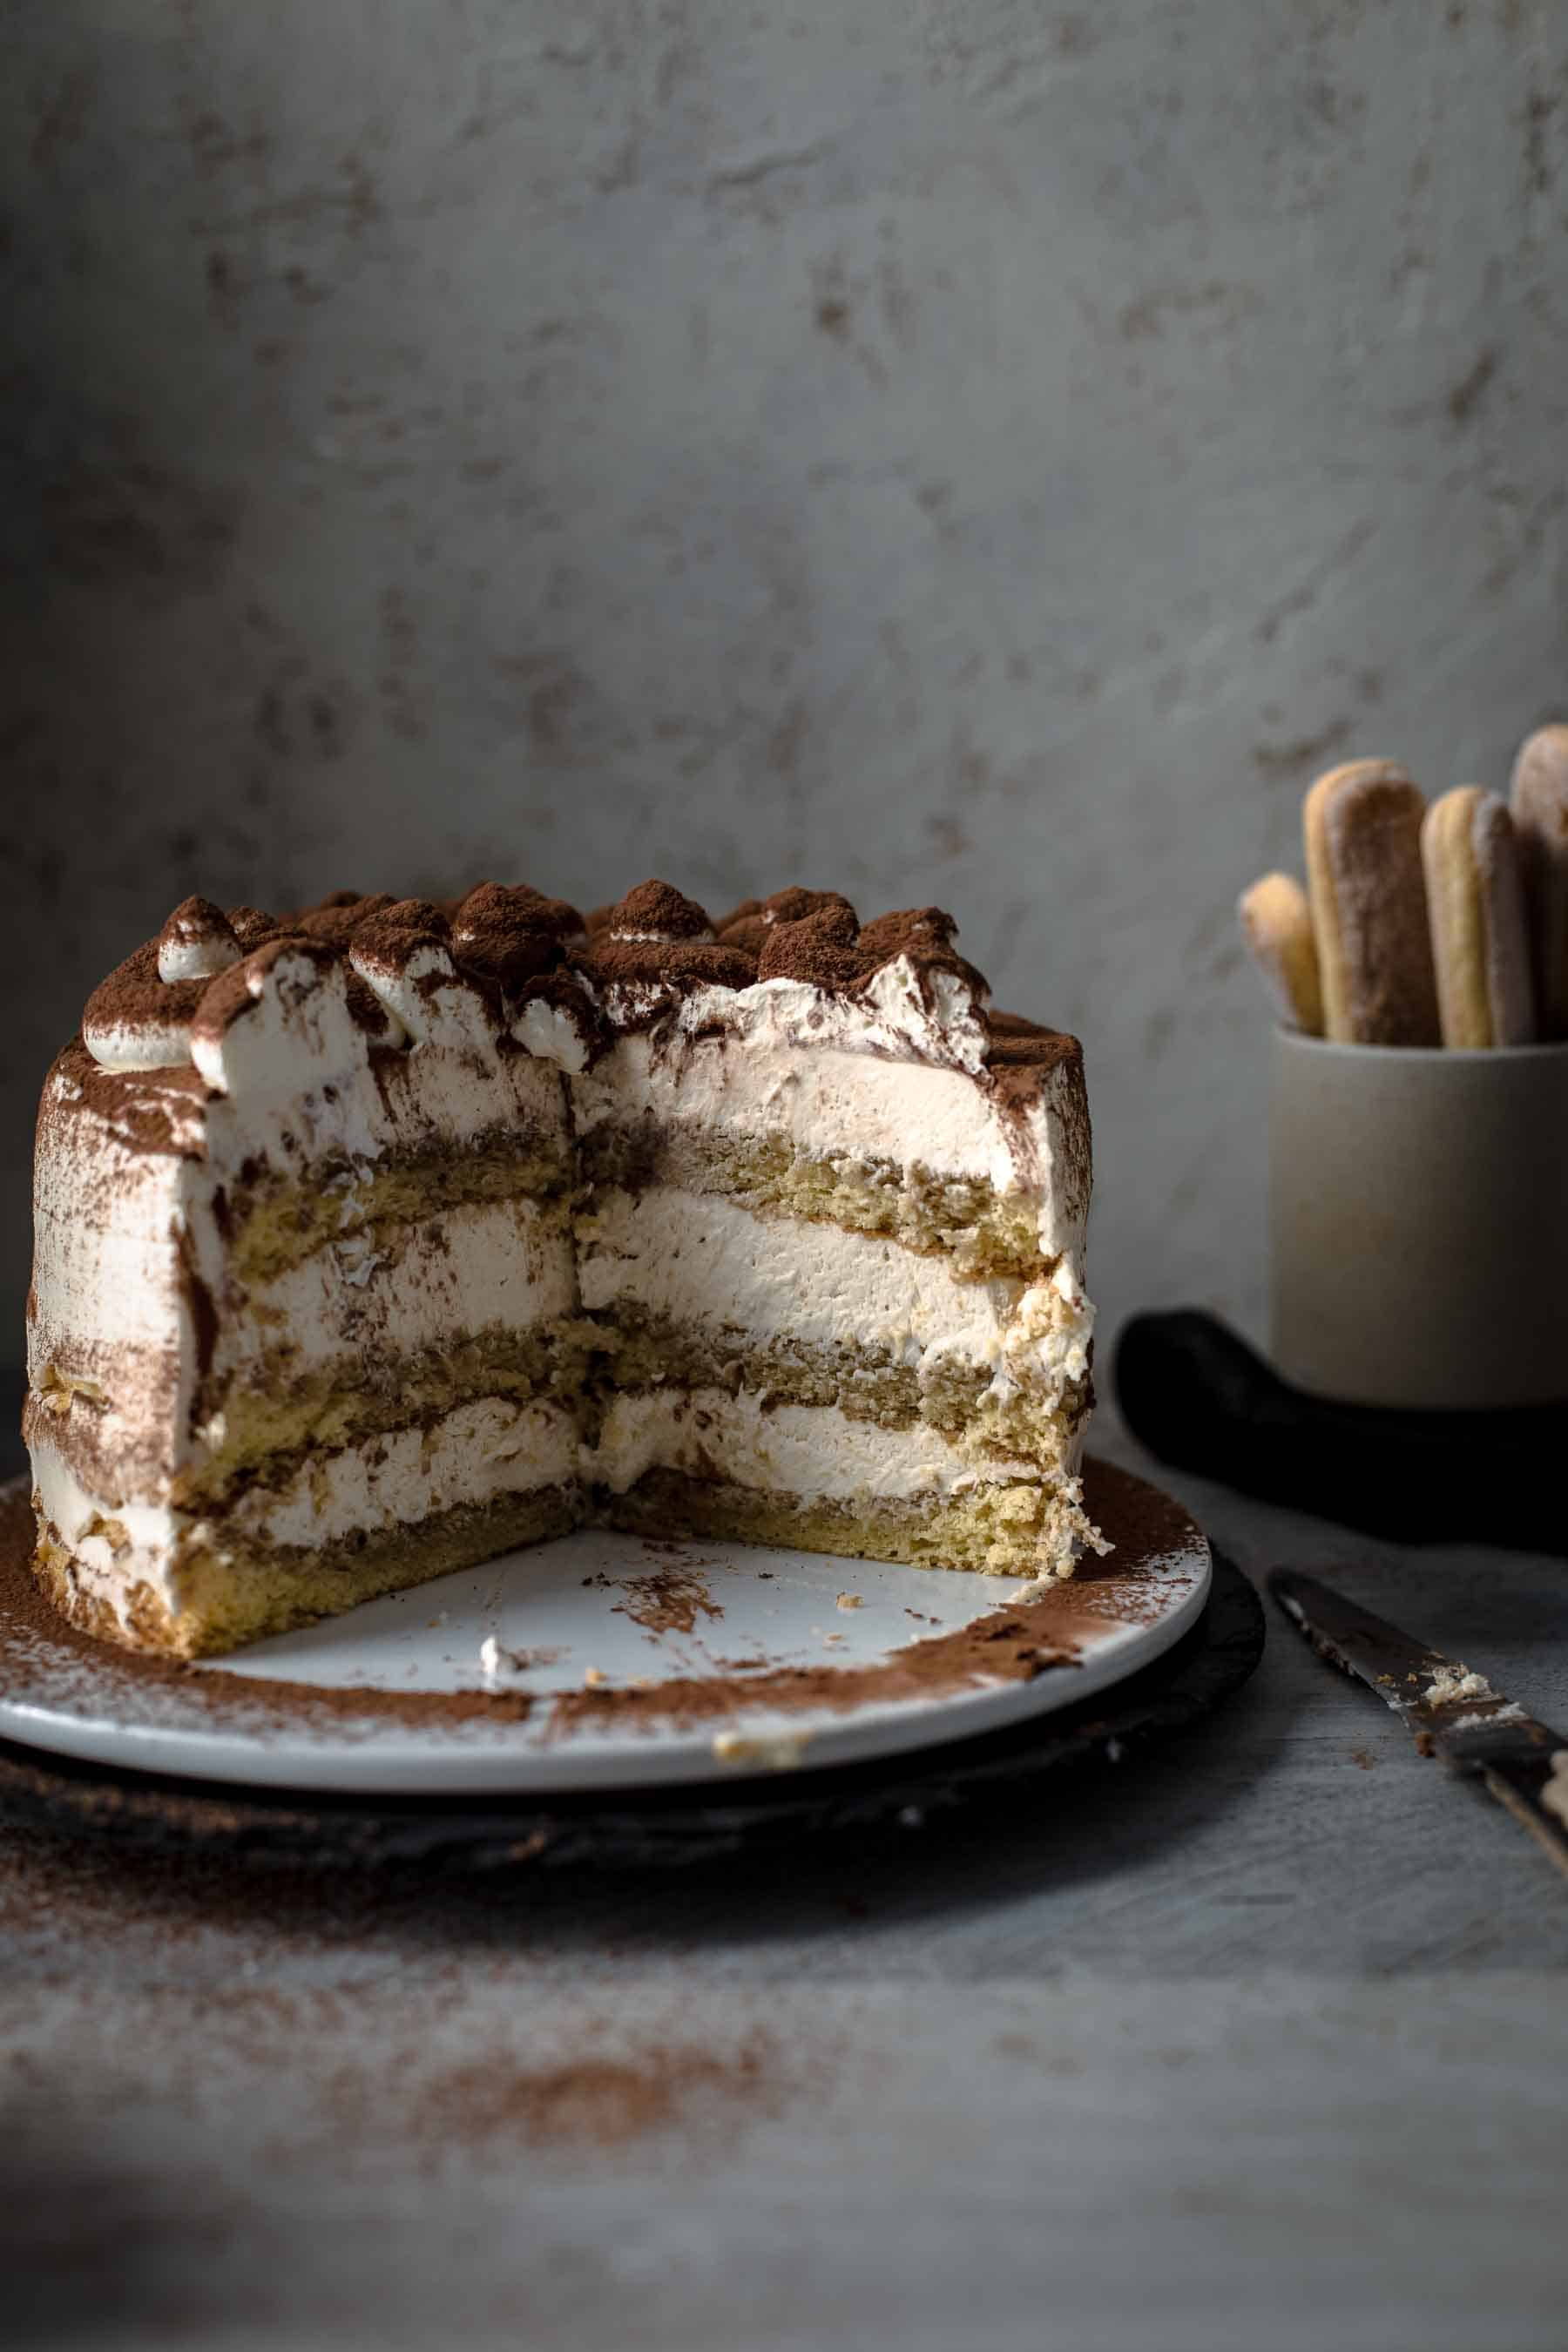 Cut Tiramisu Cake on serving plate.